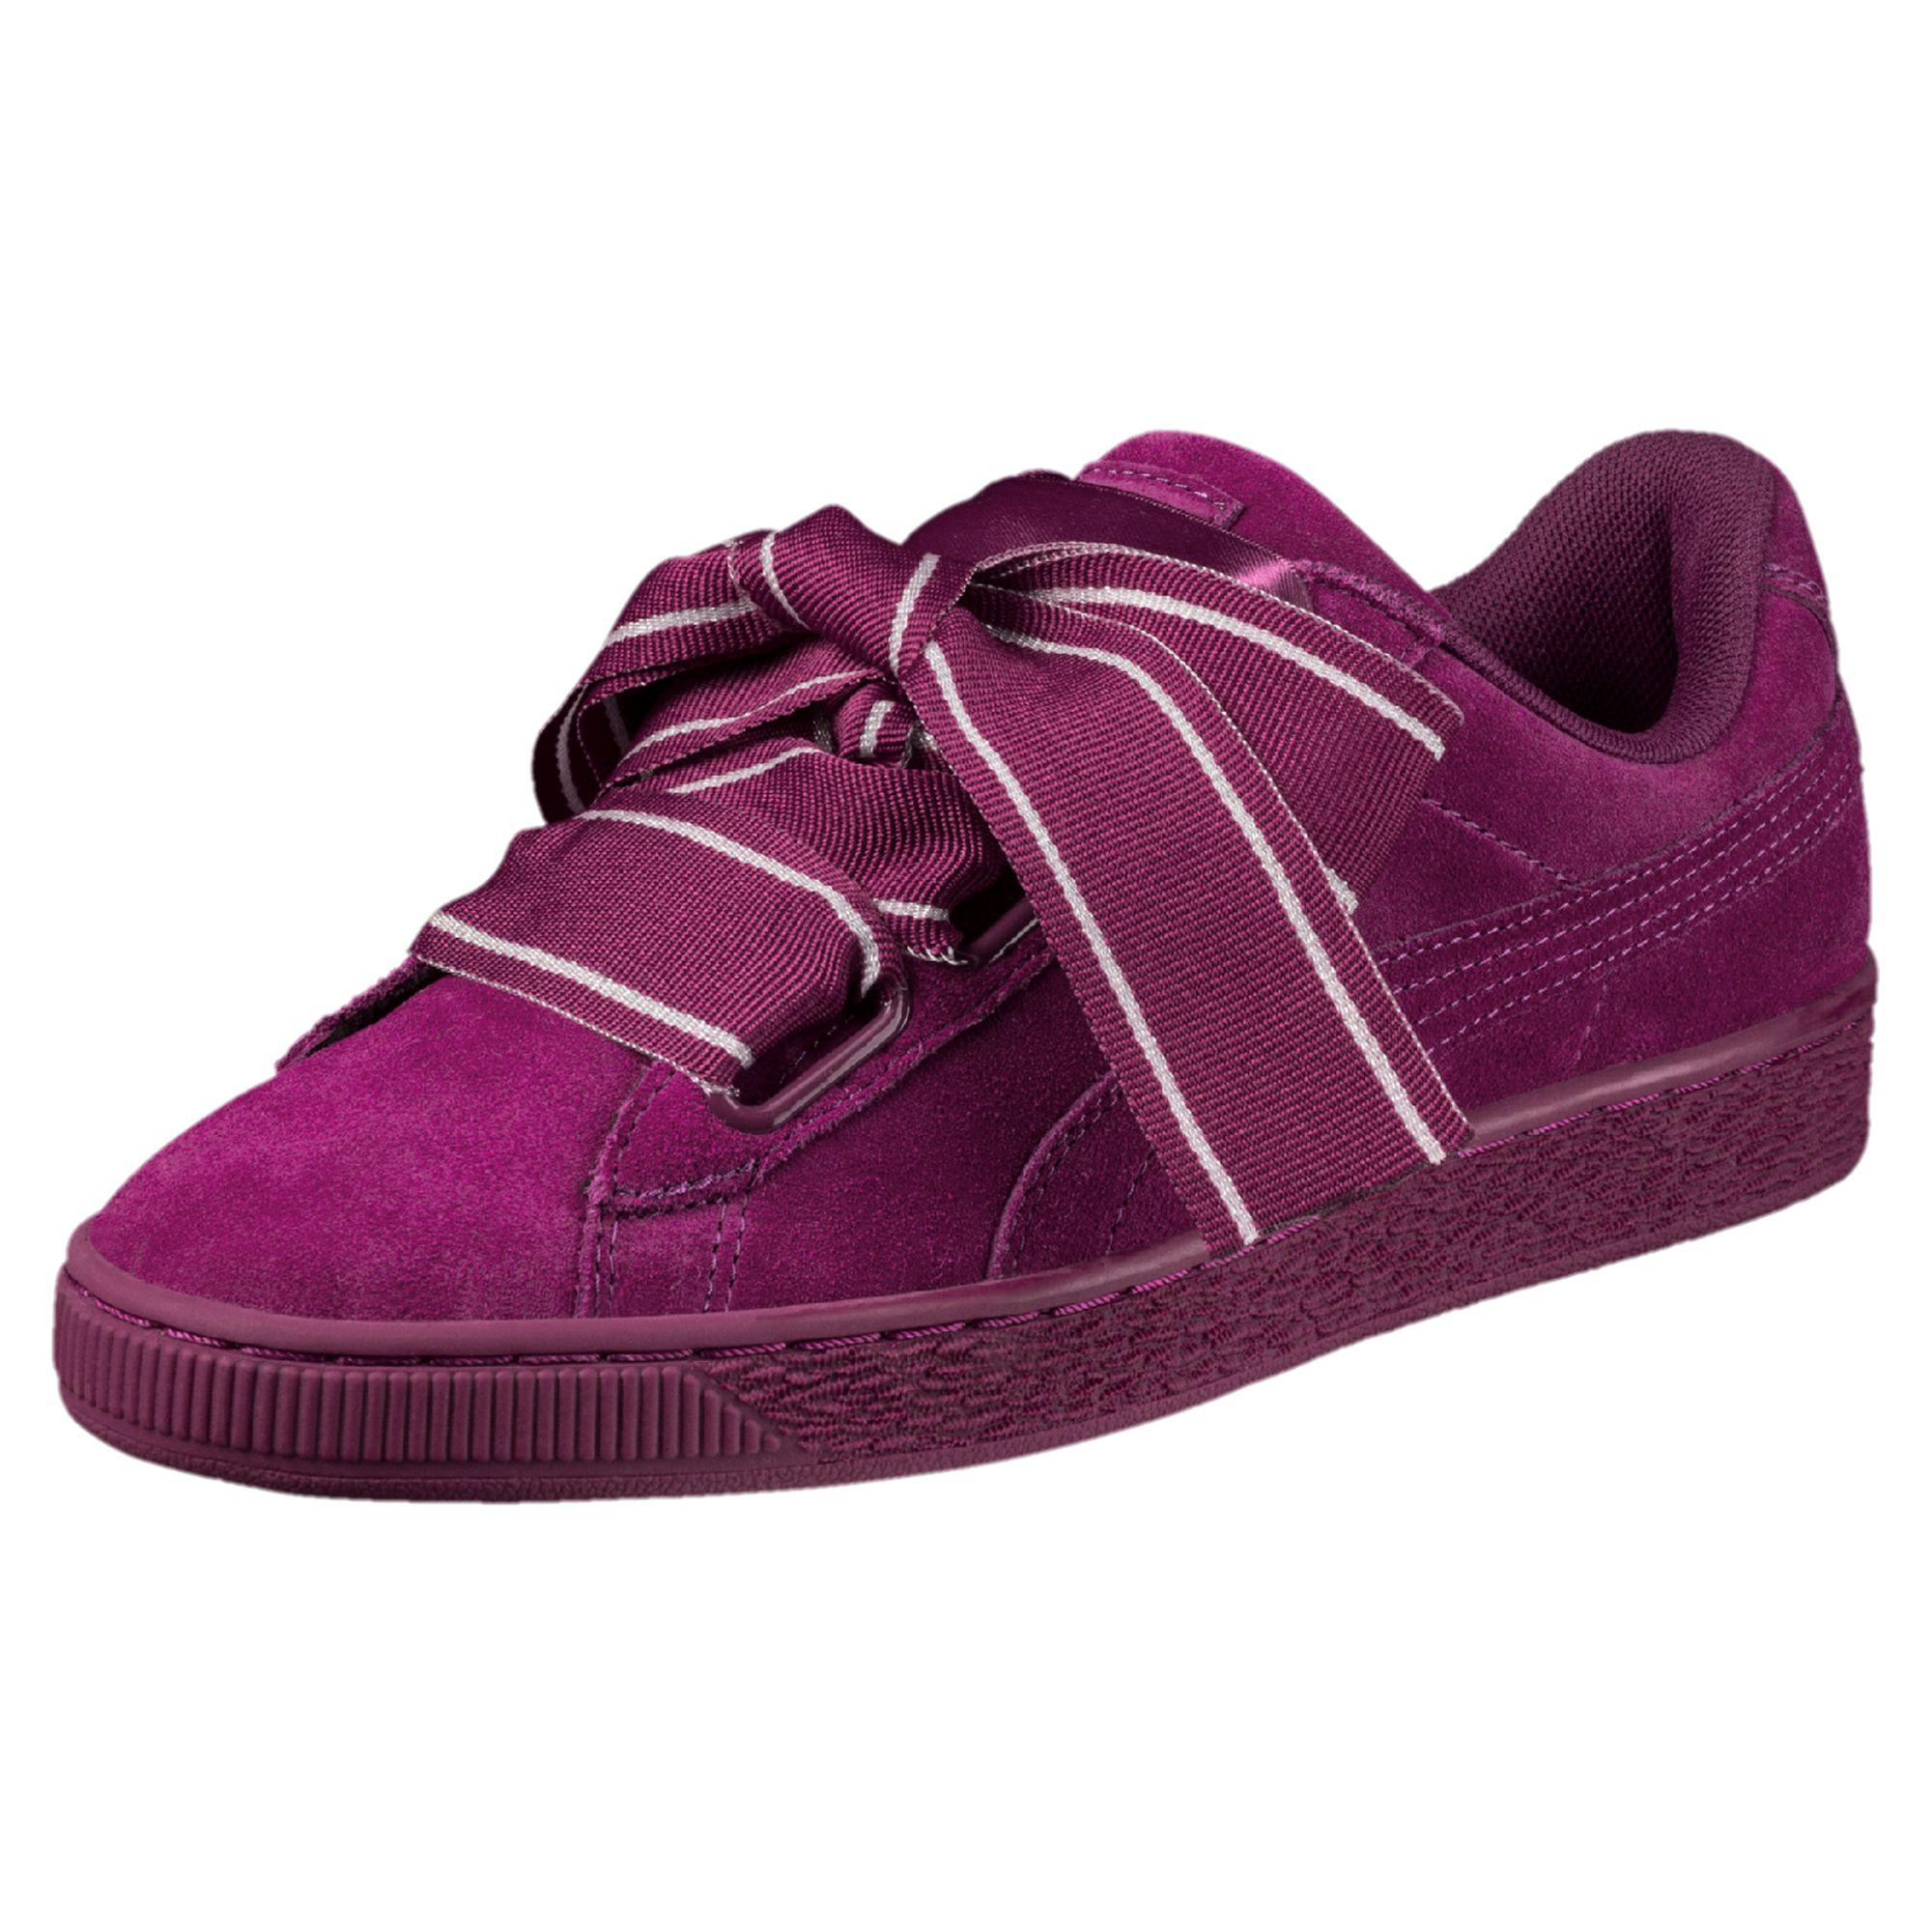 size 40 b65dd 10323 Purple Suede Heart Satin Ii Women's Sneakers